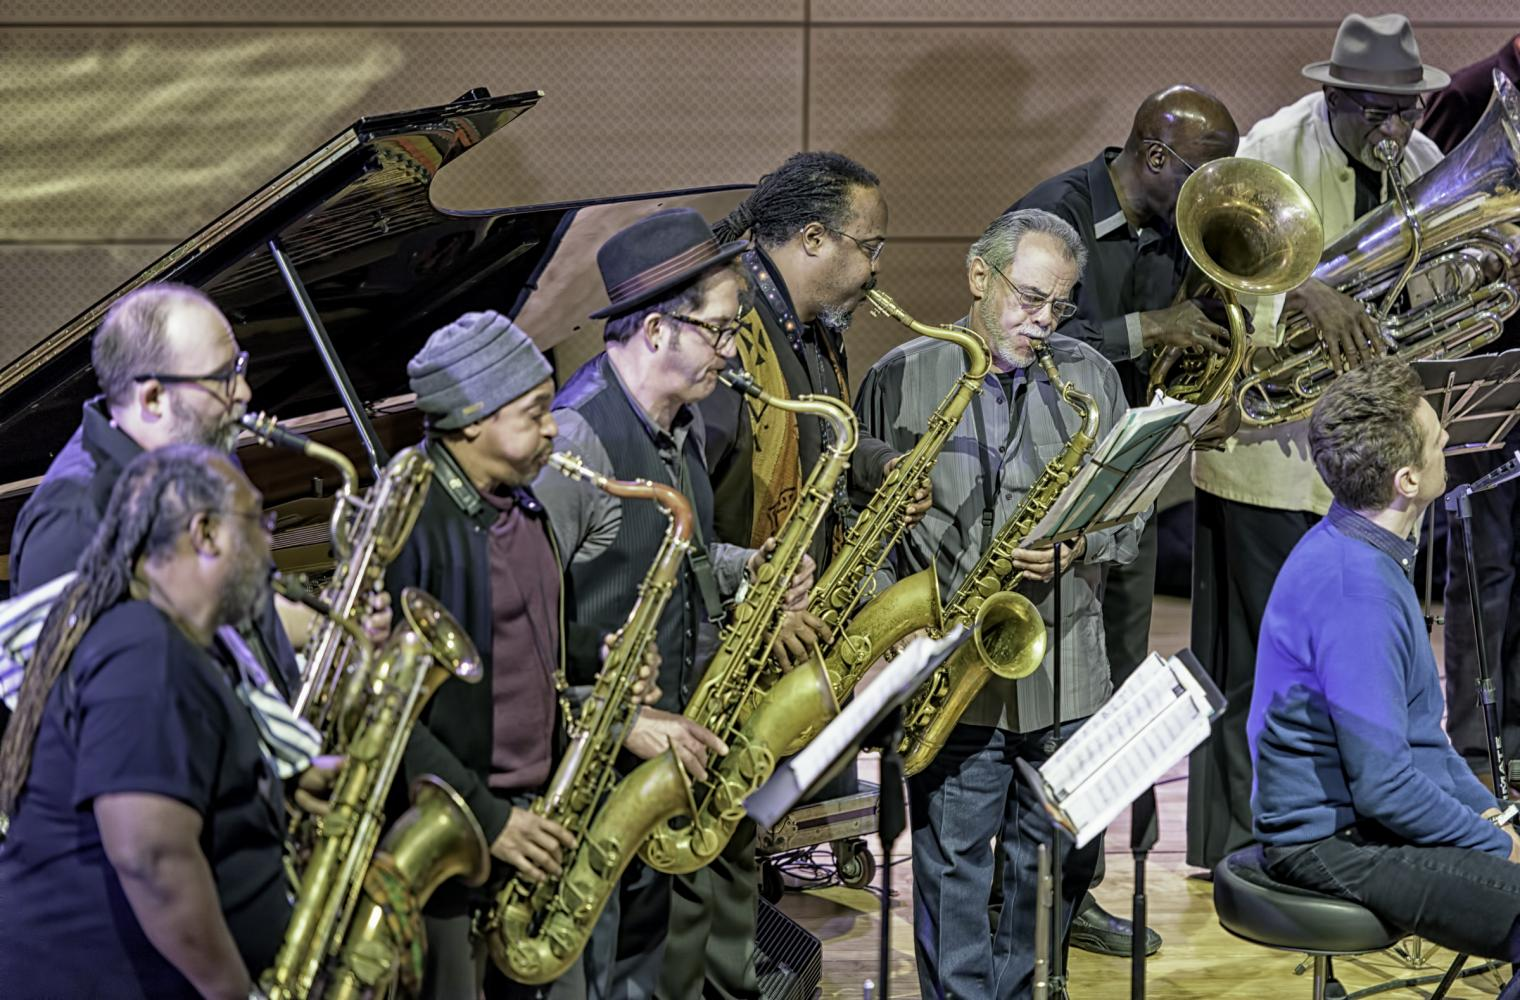 Peter Apfelbaum, Ras Moshe Burnett, Jeff Sheloff, Jay Rodriguez, and Bob Stewart with Craig Harris and Breathe at the NYC Winter Jazzfest 2017